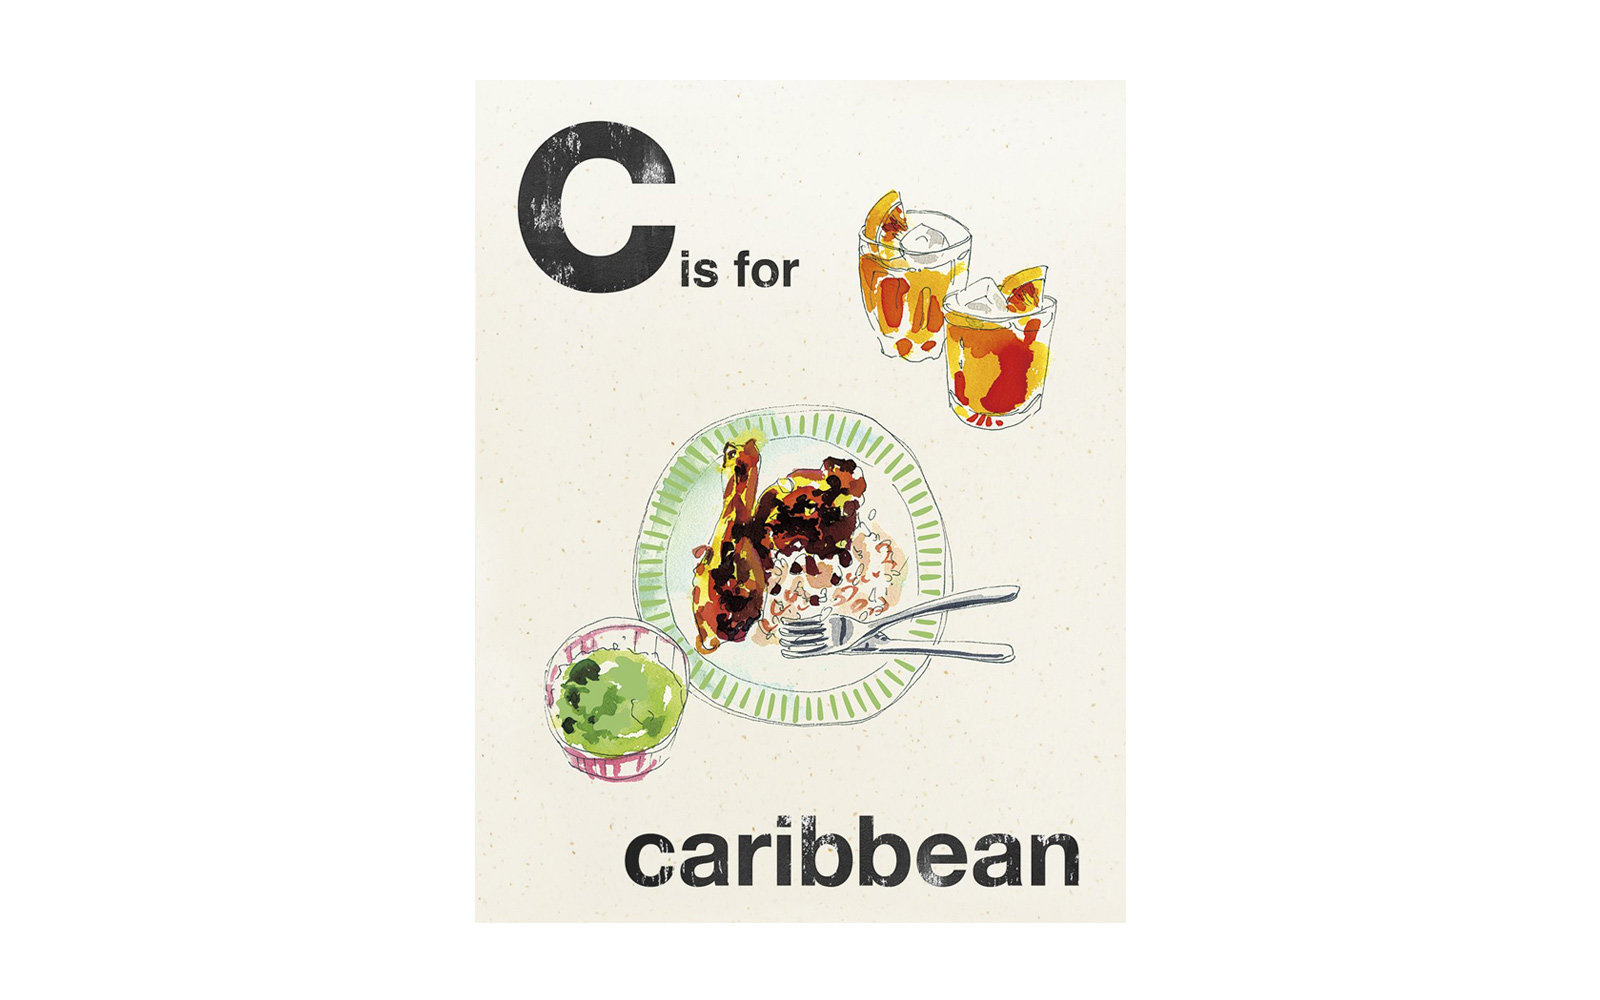 C is for Caribbean, by Quadrille